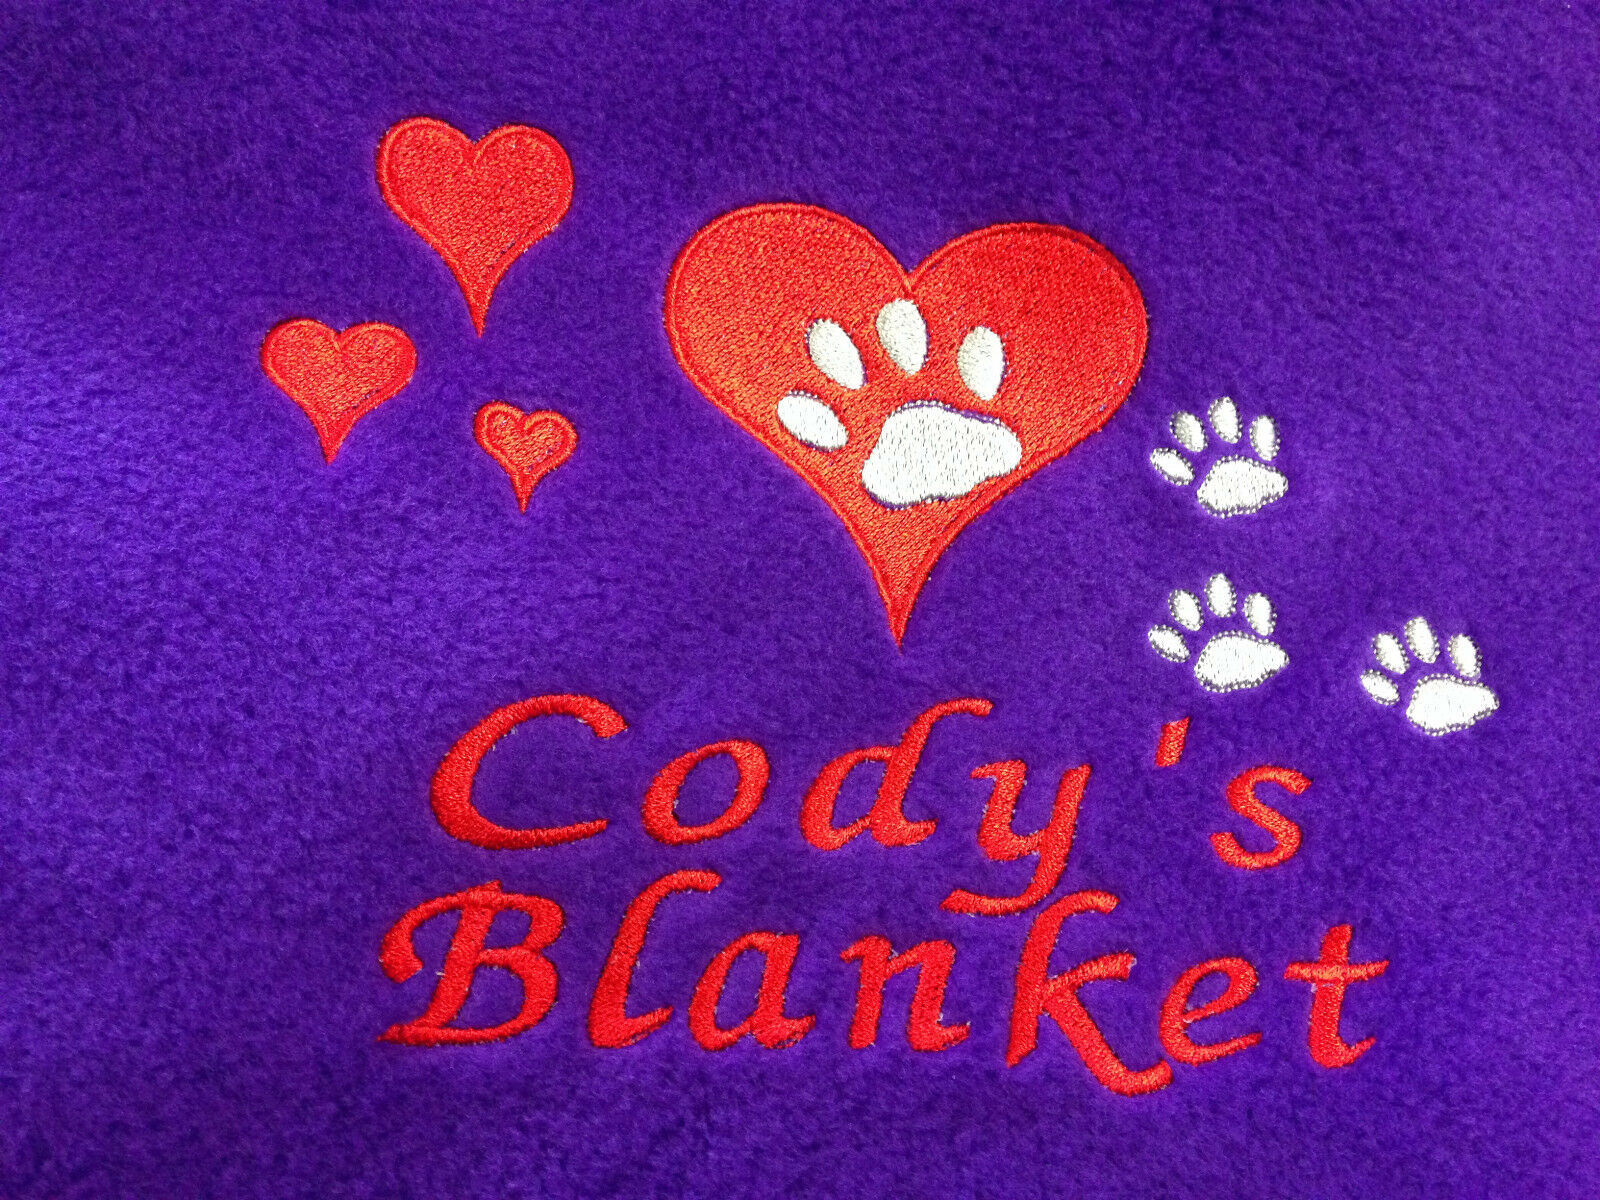 Personalised Embroidered Cat/ Kitten Fleece Pet Blanket Hearts & Paws gift